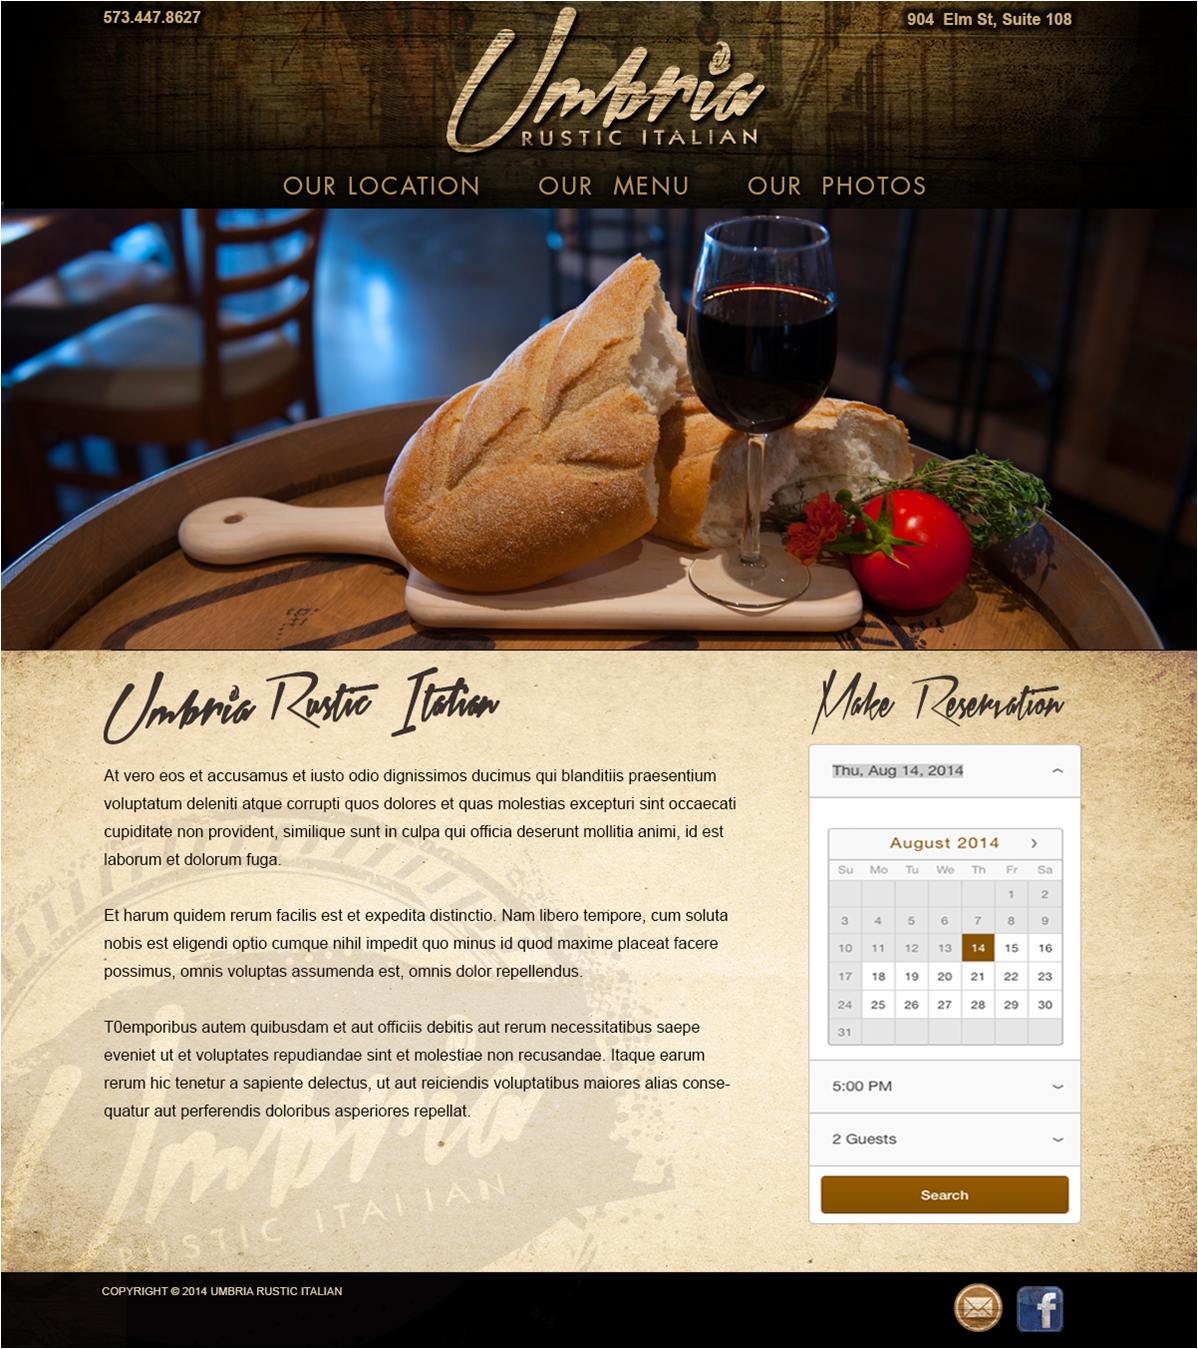 Homepage concept for Umbria Rustic Italian restaurant in Columbia, Missouri.